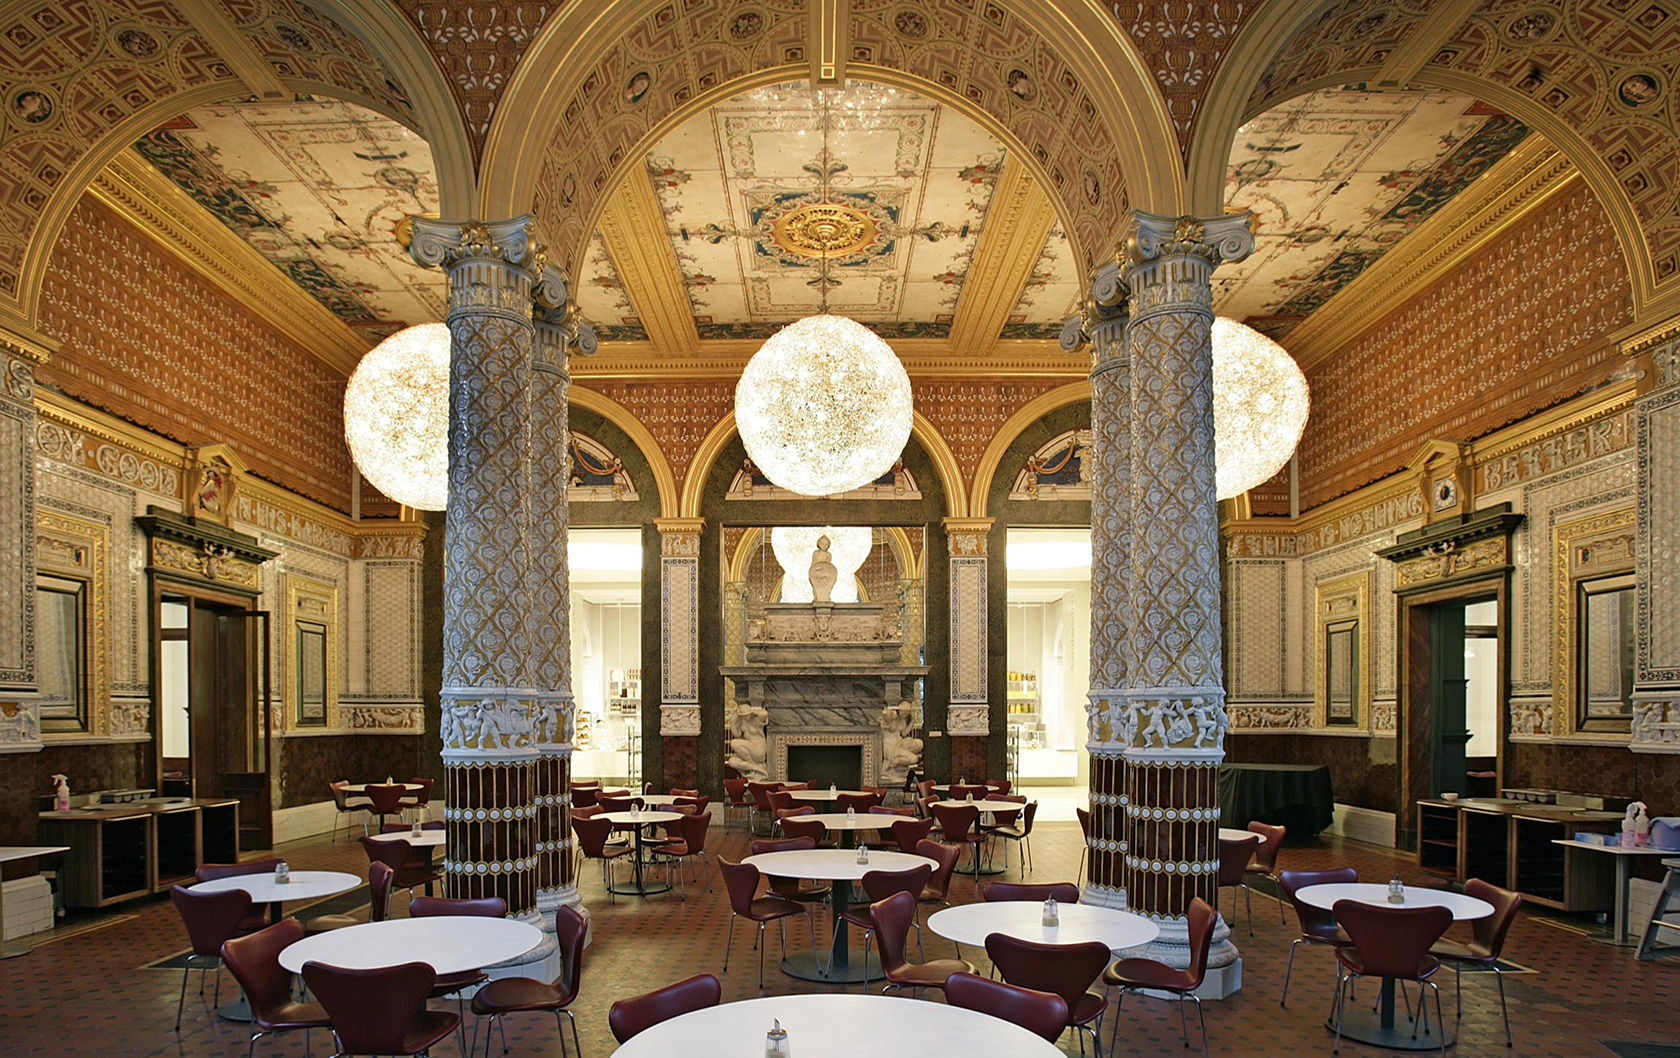 The Gamble Room at the V&A museum cafe